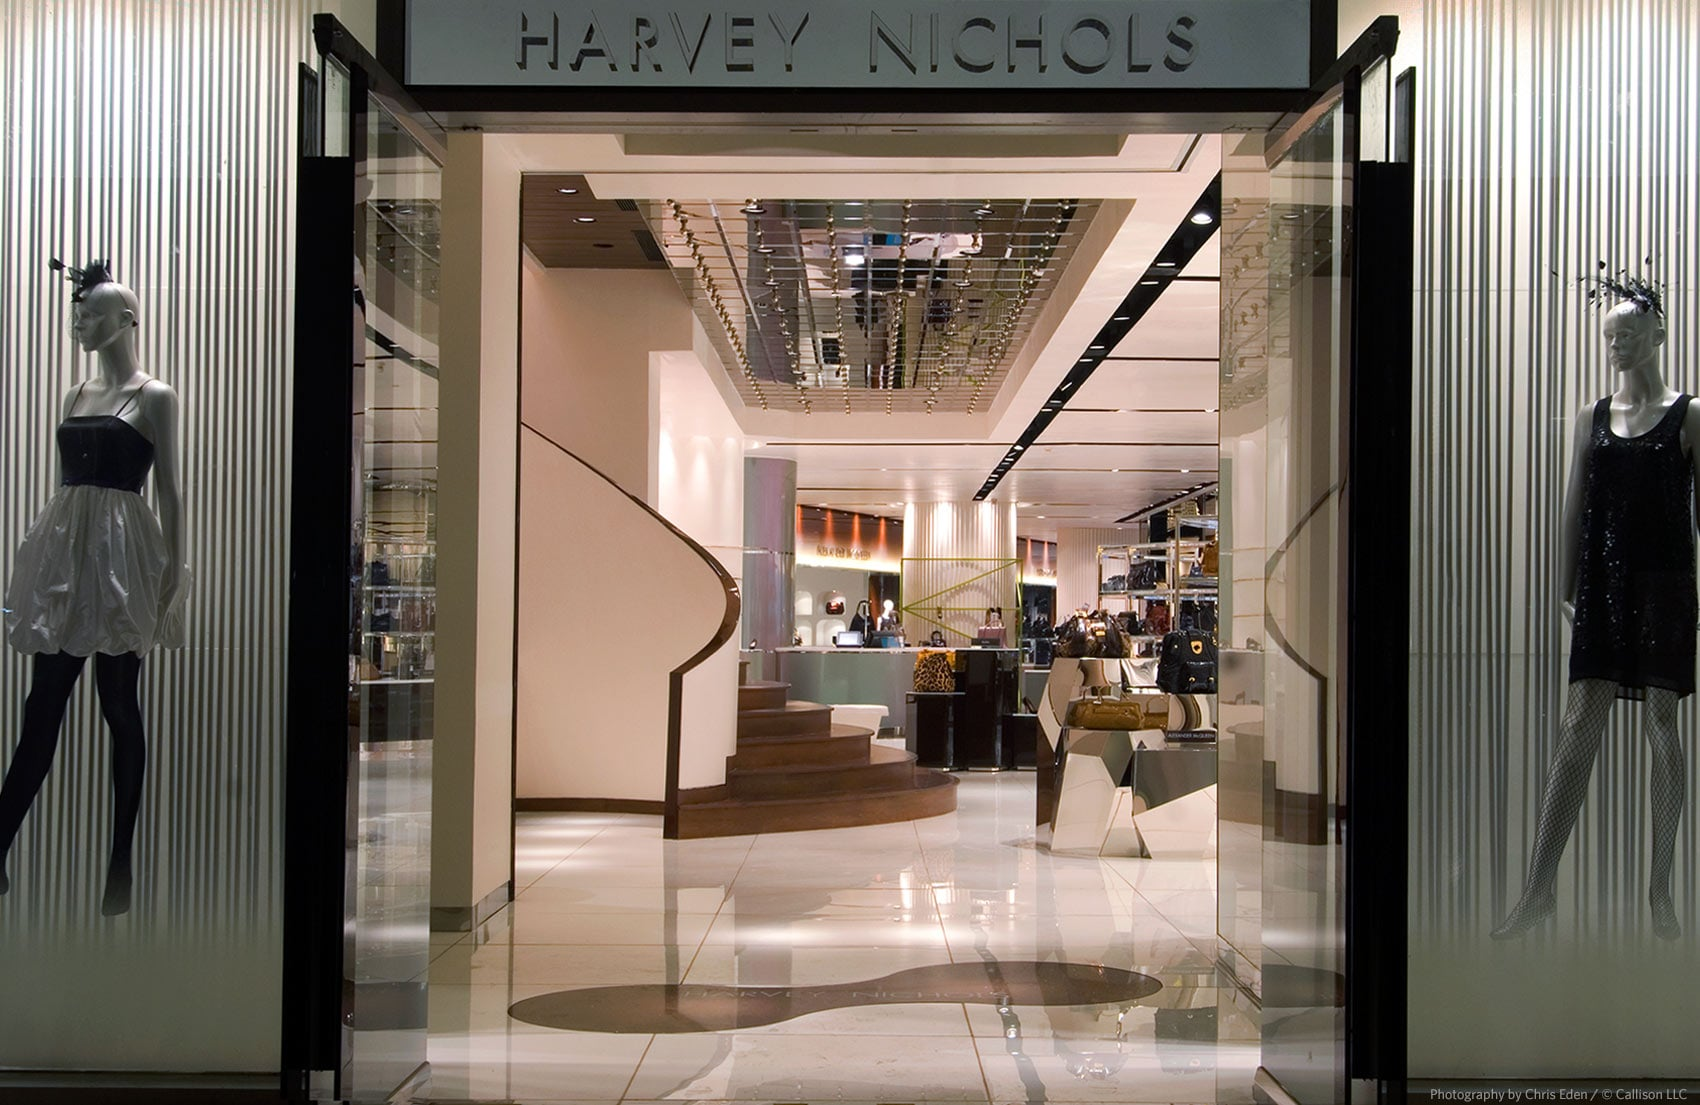 Harvey Nichols - Jakarta - Drawing the viewer in